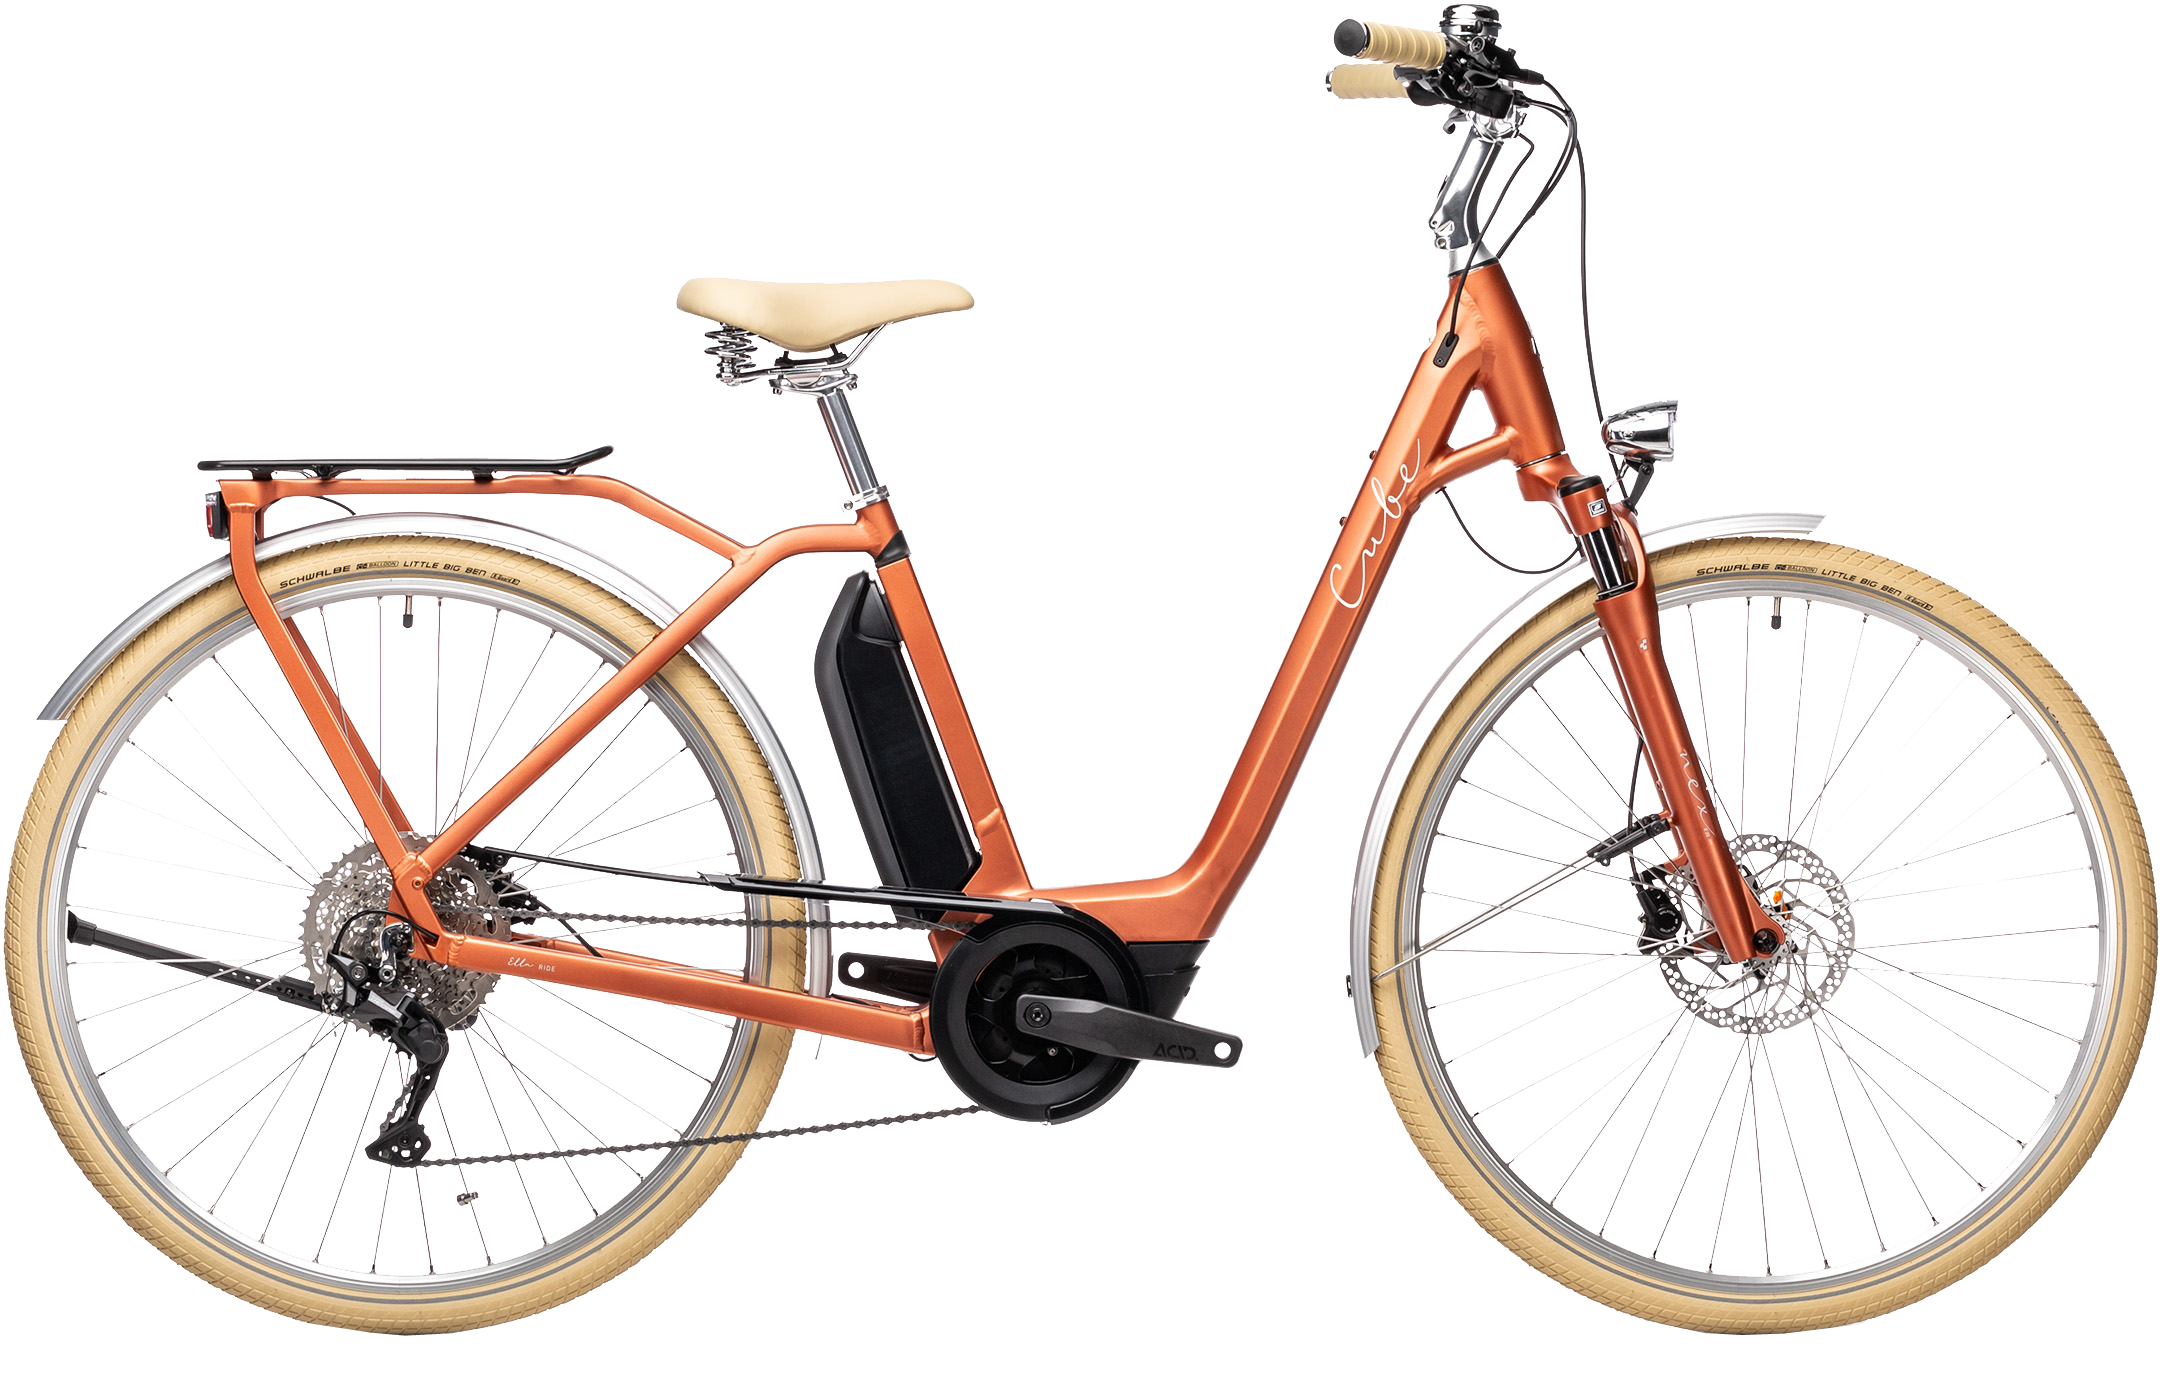 https://w8w5m3f8.stackpathcdn.com/20298/velo-electrique-urbain-ella-ride-hybrid-400-ou-500wh.jpg